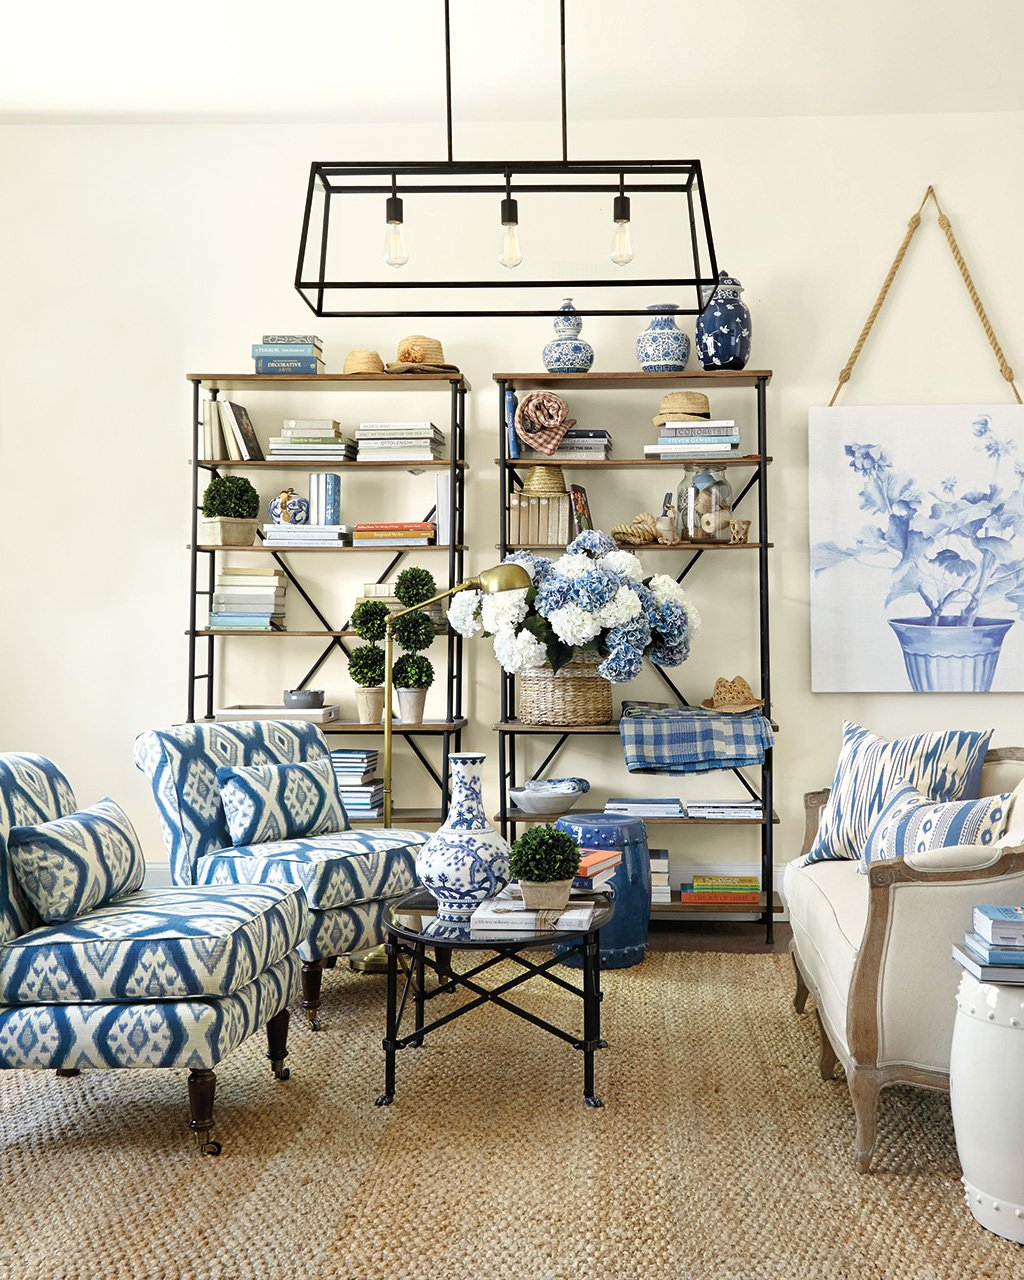 15 ways to layout your living room how to decorate shop eldridge rectangular pendant olivia cocktail table classic garden seat sonoma tower tybee blue fabric by the yard ballard designs sofia settee